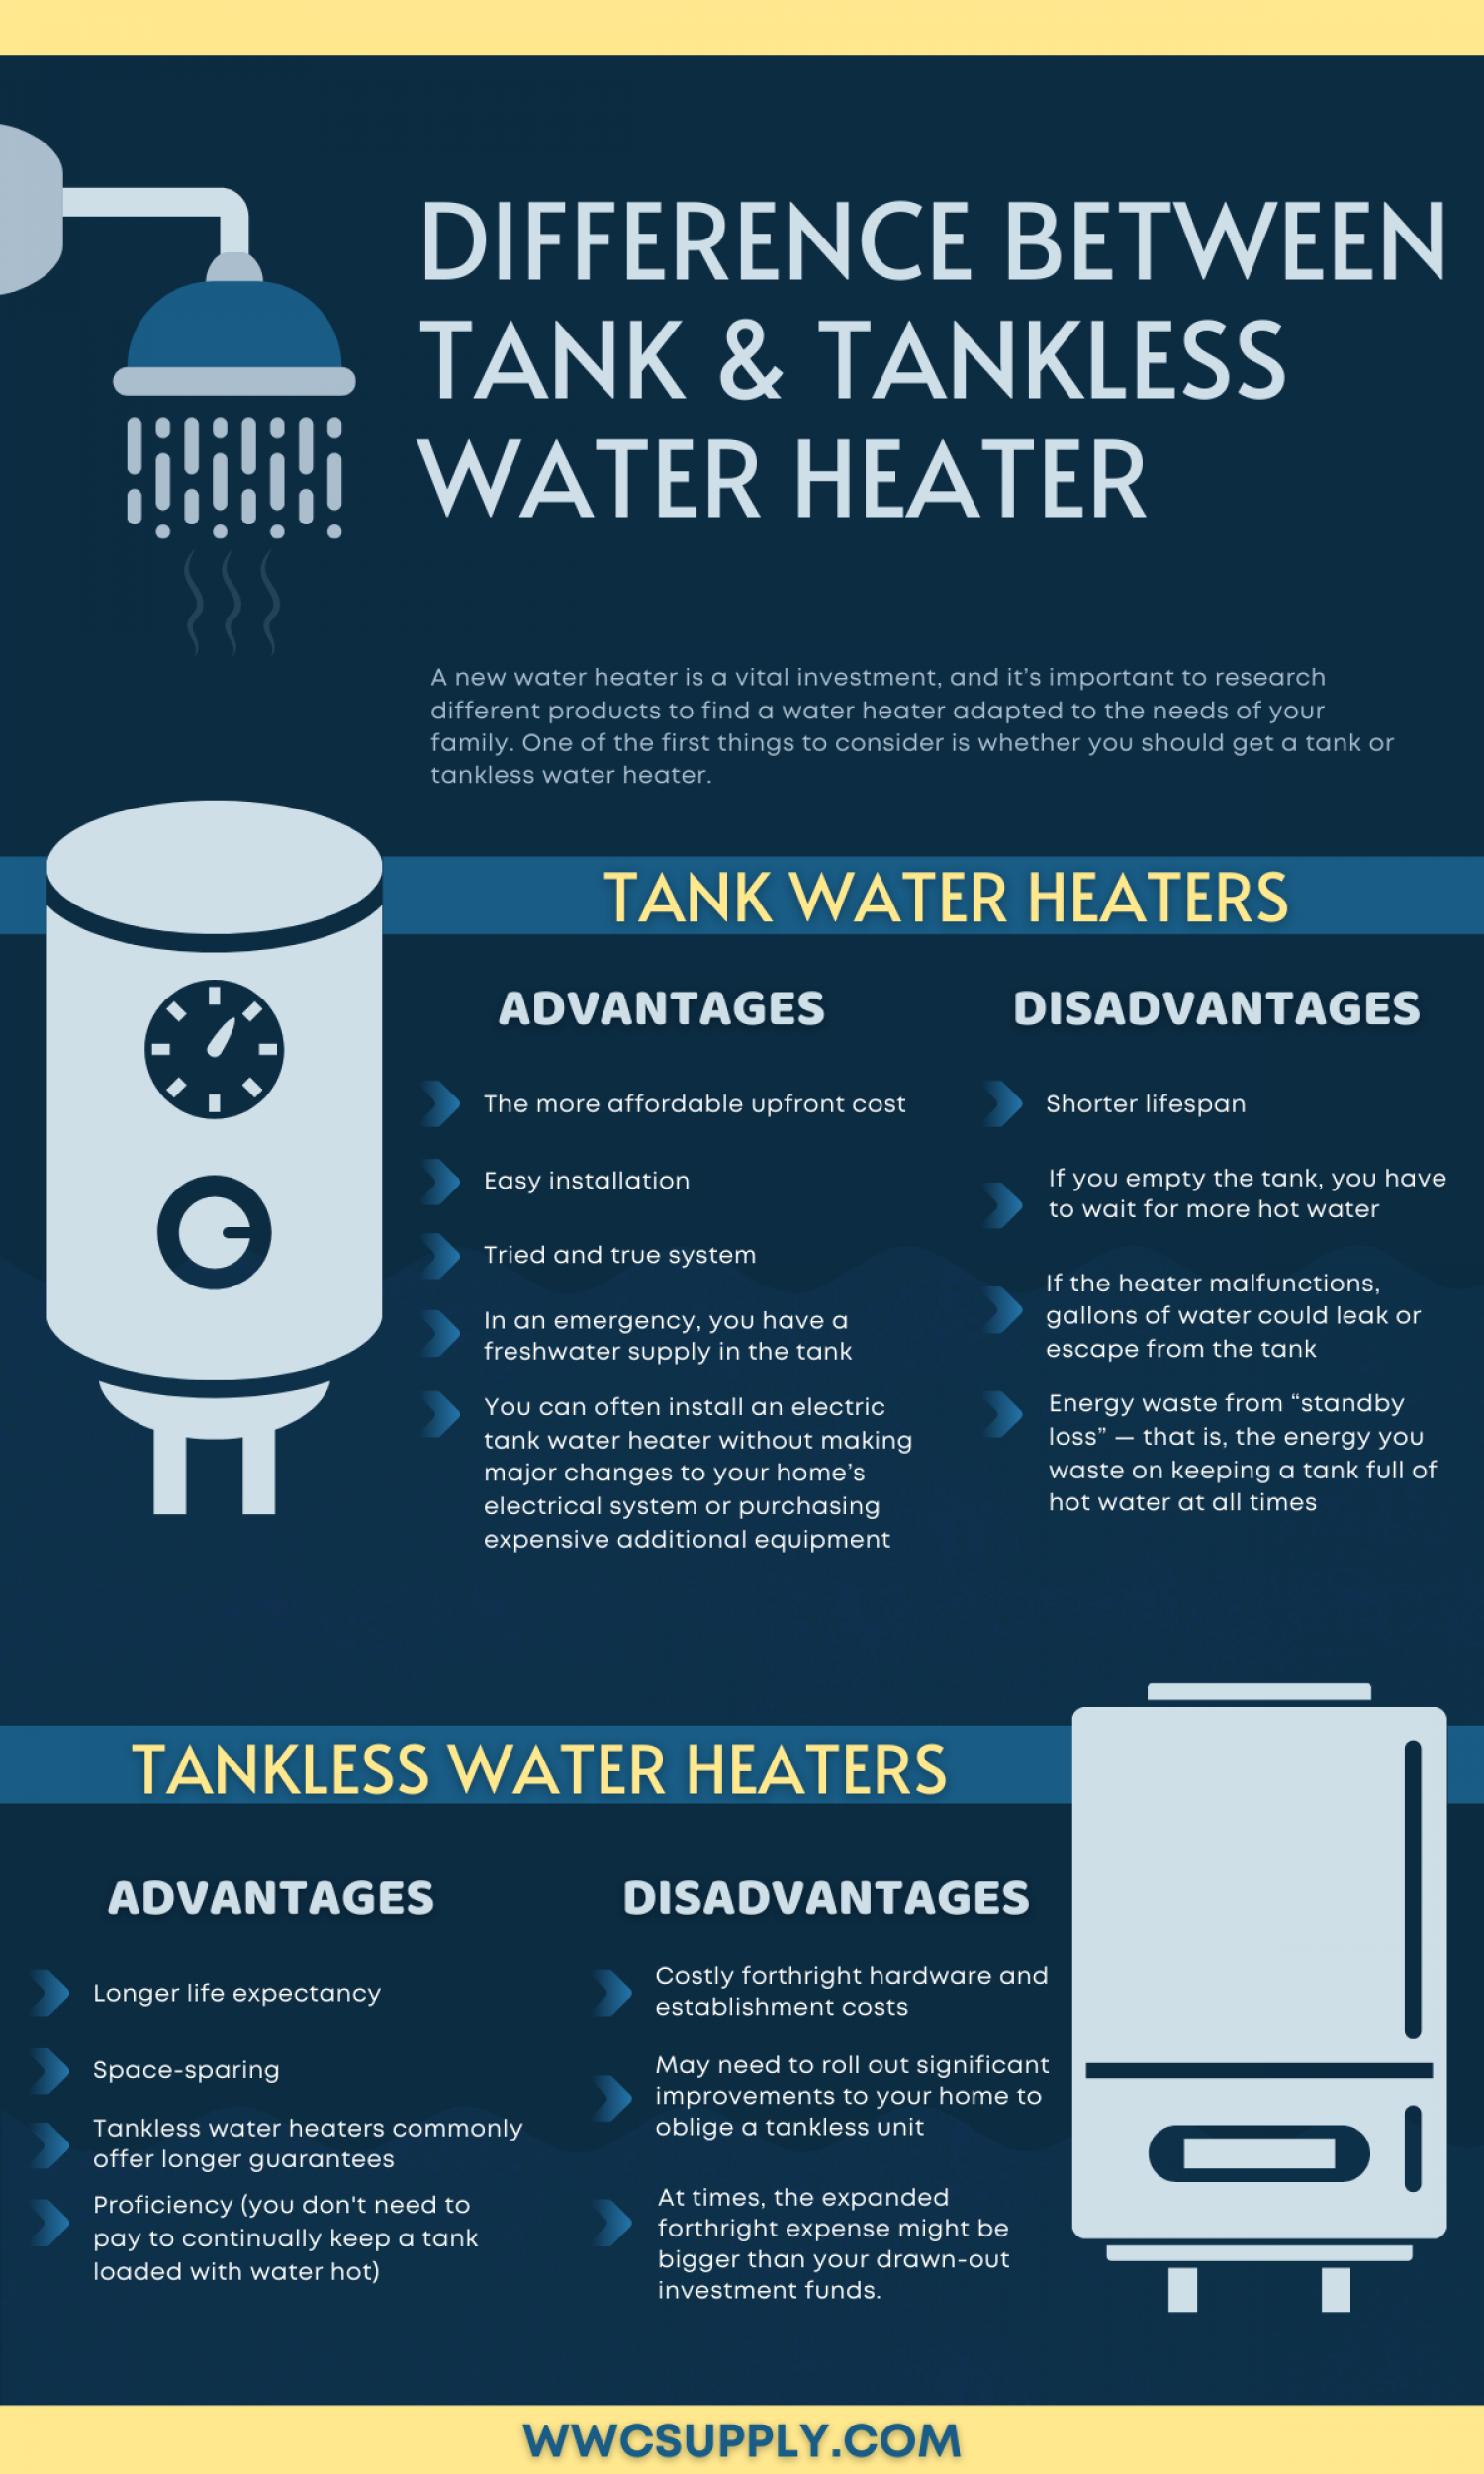 Difference Between Tank & Tankless Water Heater Infographic